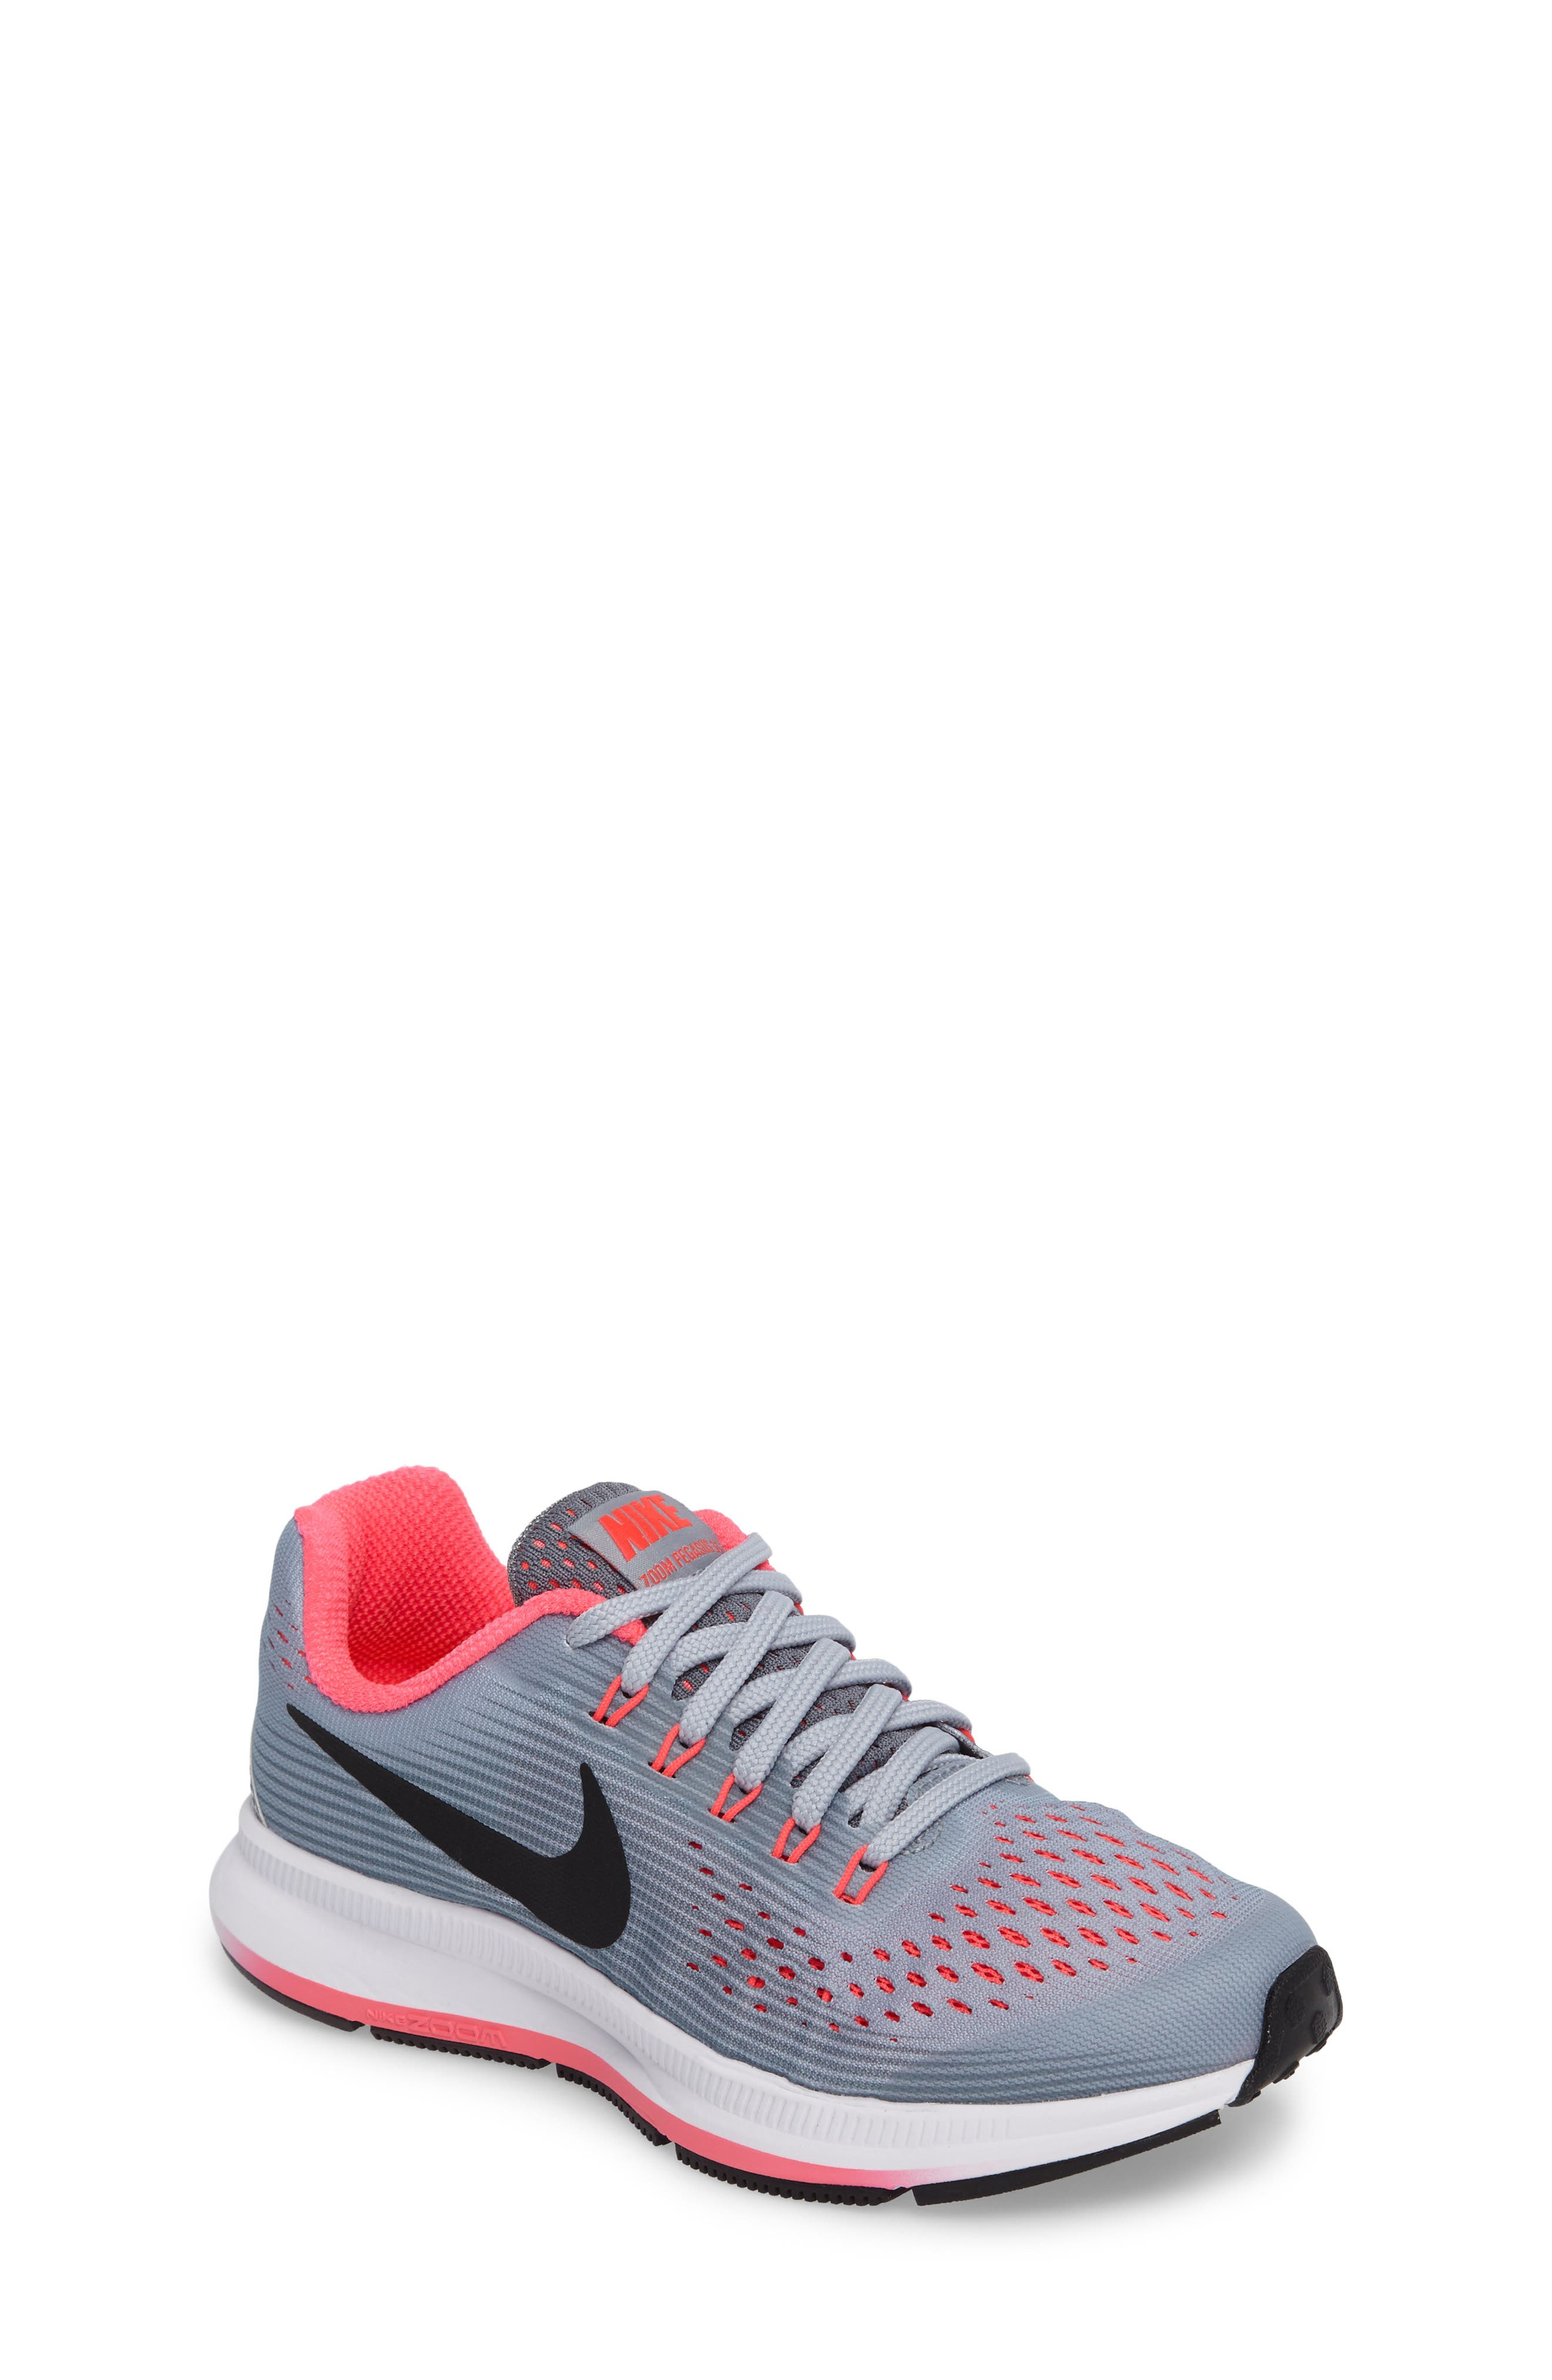 Main Image - Nike Zoom Pegasus 34 Sneaker (Little Kid & Big Kid)